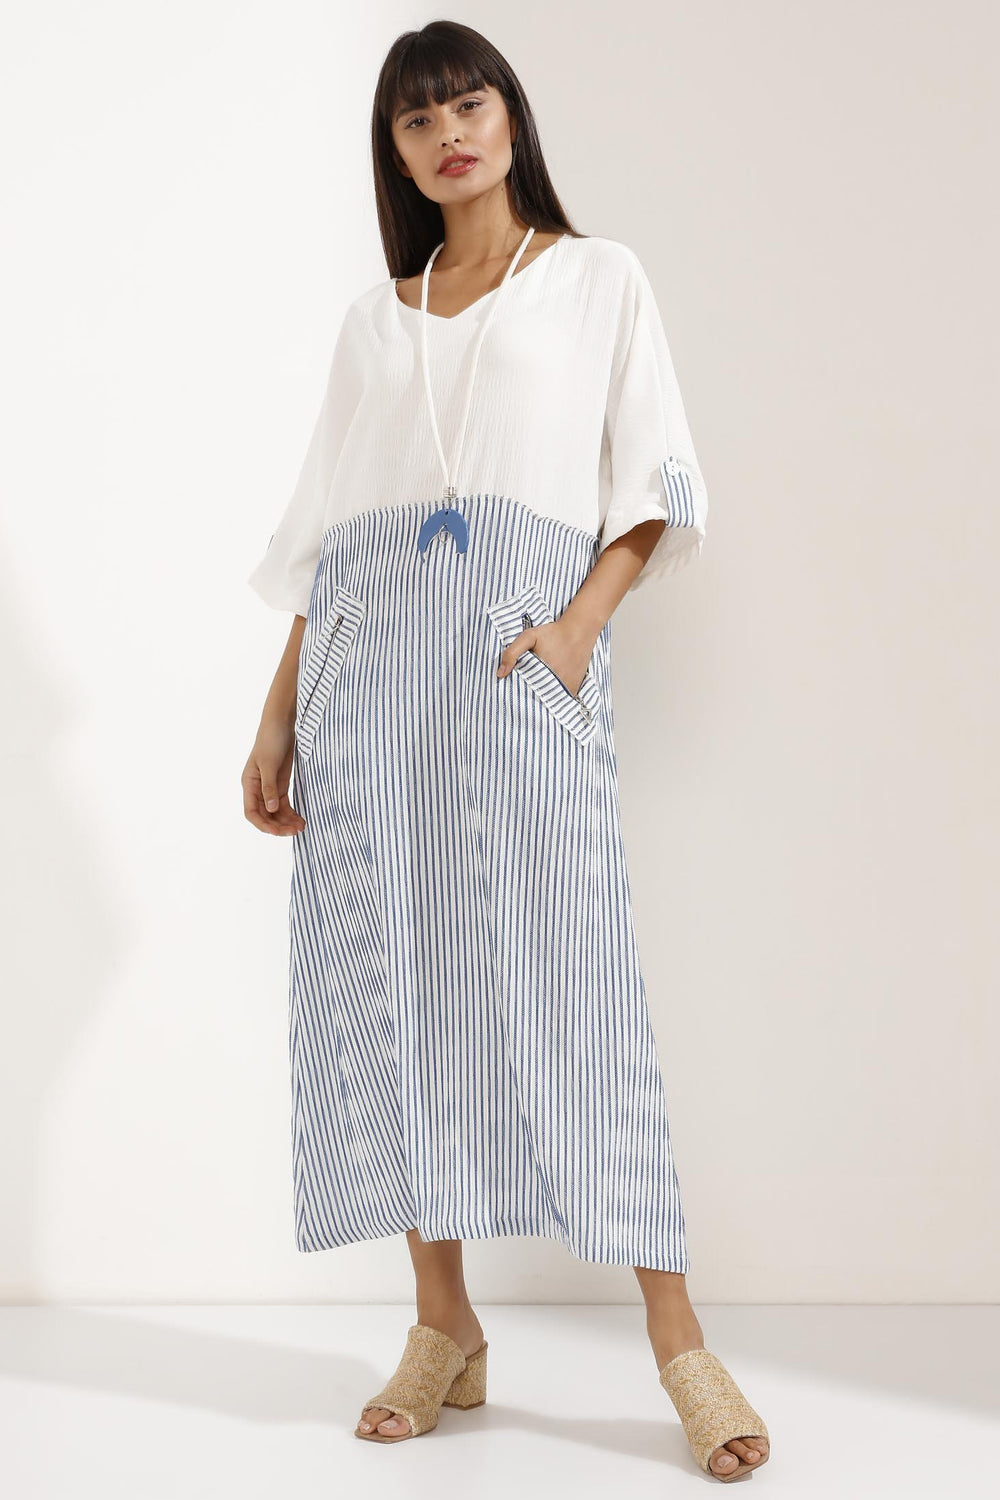 Store WF Striped Linen Blue and White V-Neck Maxi Dress with Necklace Modest Loose Fitting Dress with Long Sleeves, Necklace and Front Pockets in 100% linen